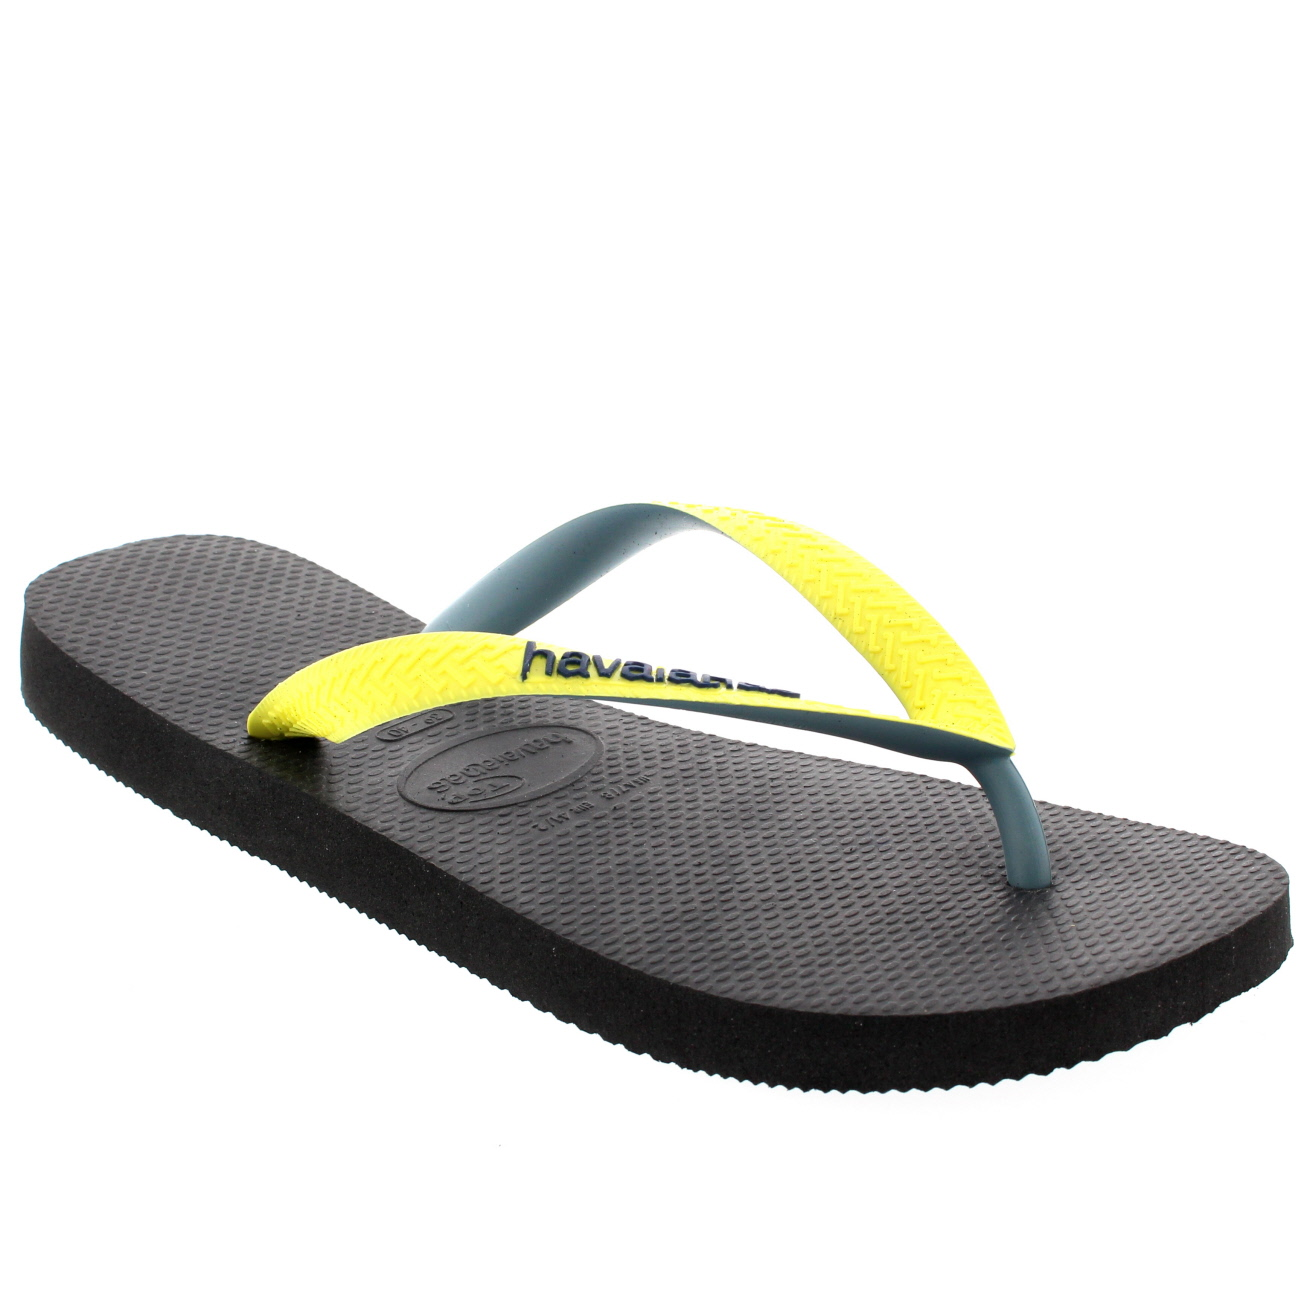 a98a6f97bfe Details about Mens Havaianas Top Mix Casual Holiday Beach Summer Flip Flops  Sandals UK 6-13